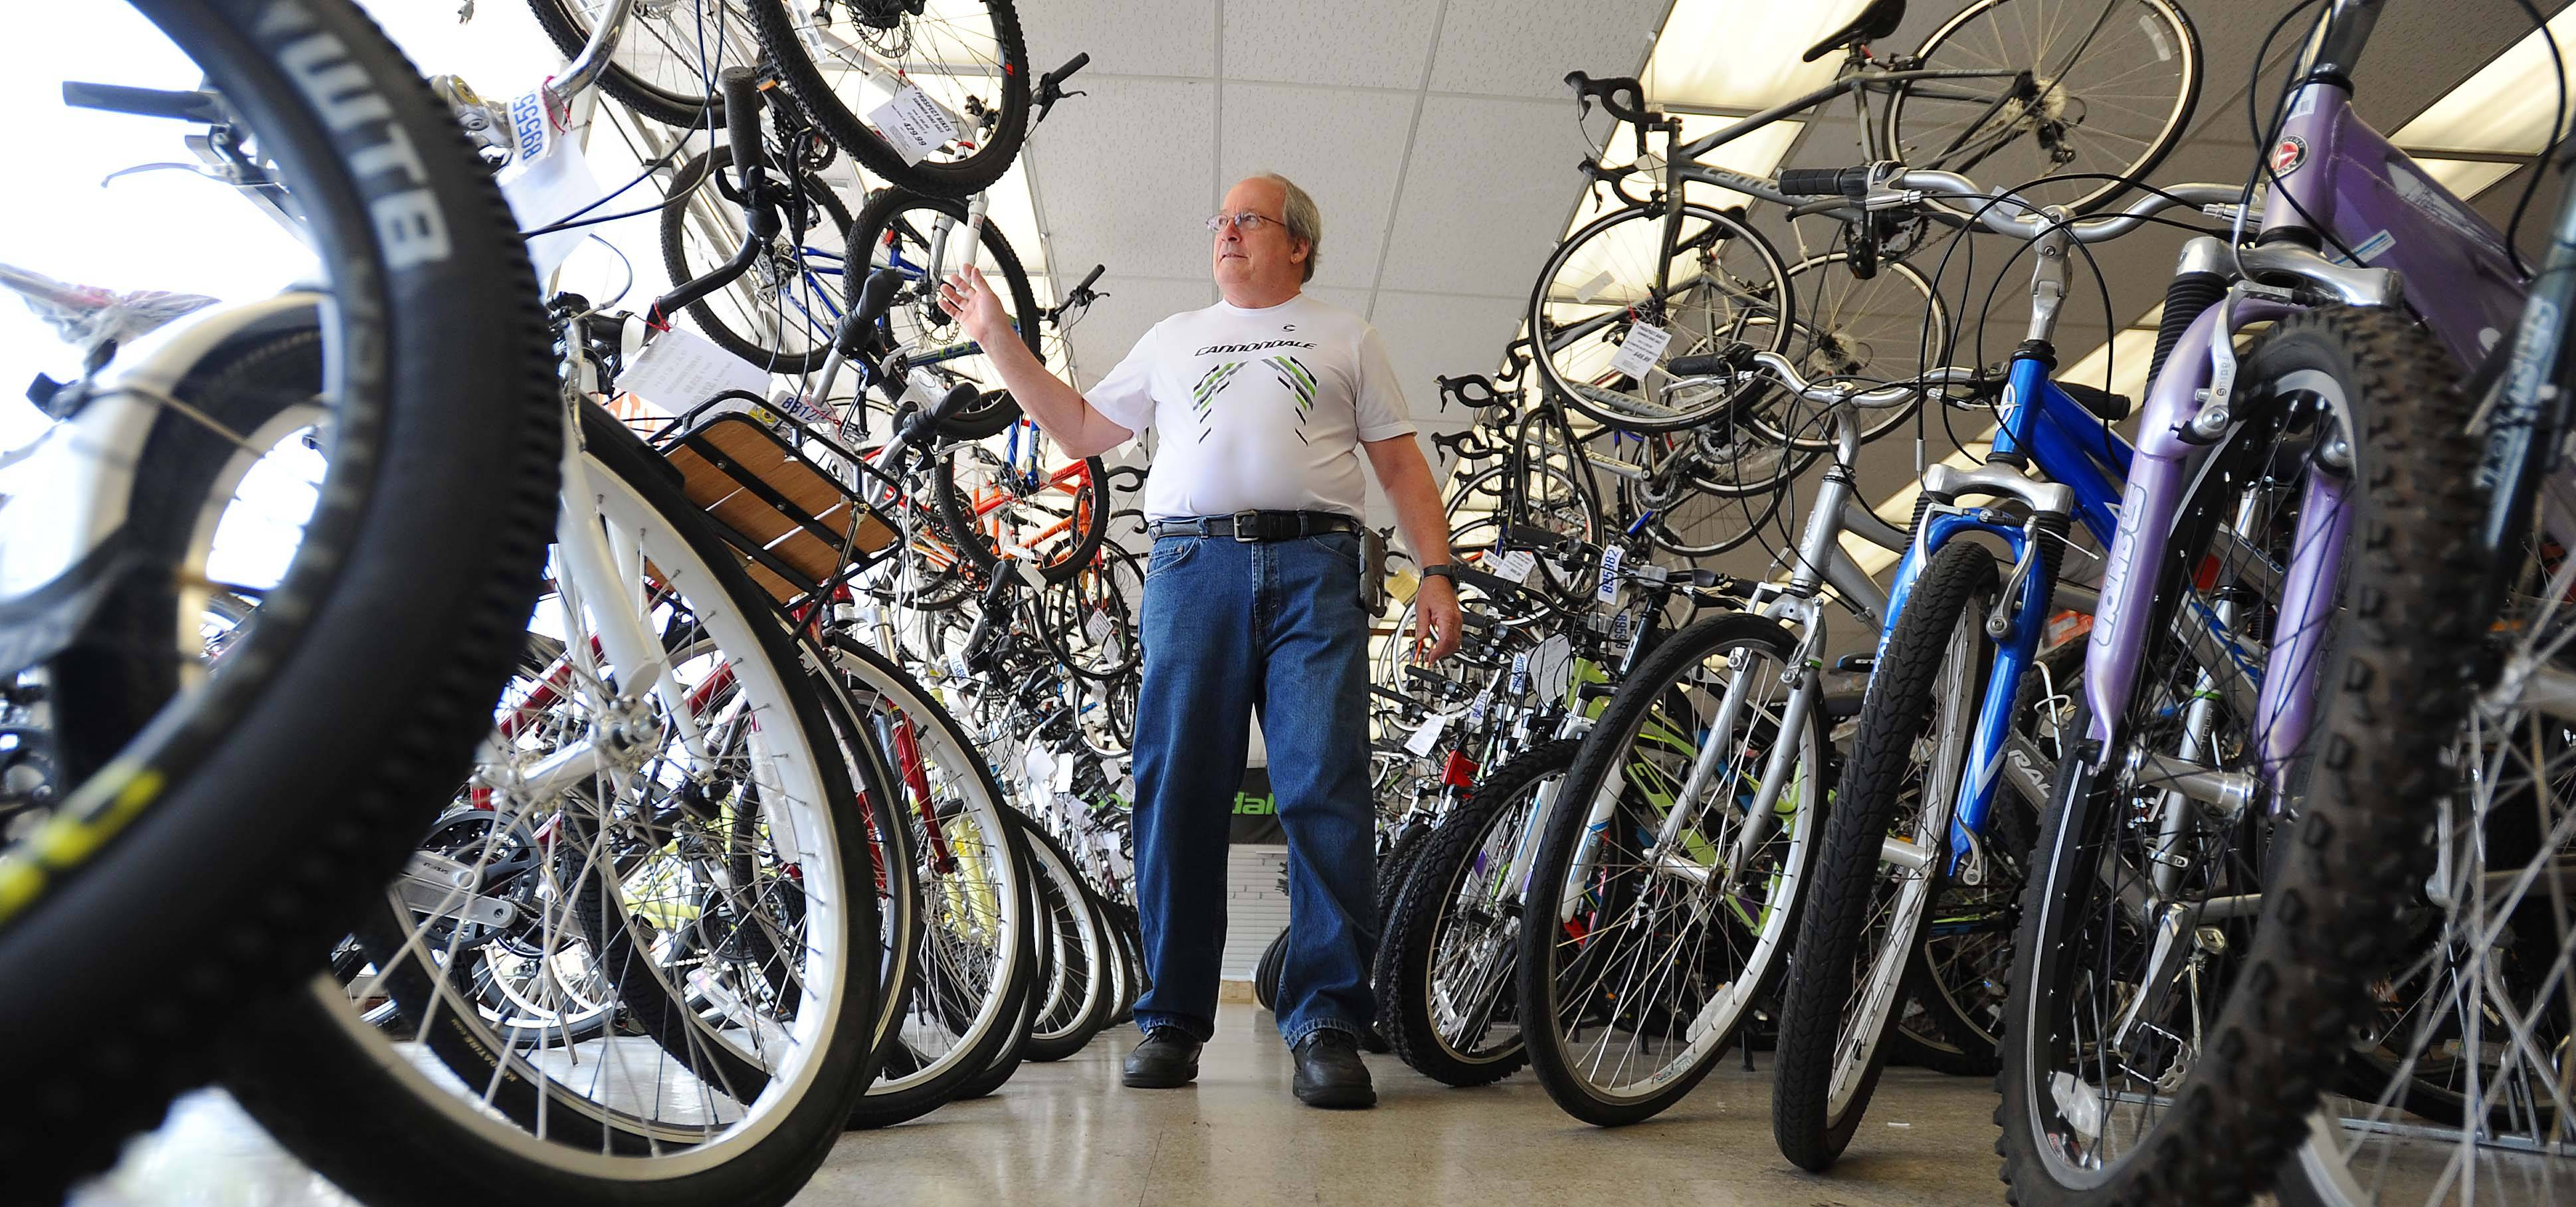 Bill Schmoldt, owner of Prospect Bikes in Mount Prospect waves to a fellow bike rider outside as he inspects his inventory of bikes he will be selling this month before closing the shop he has run since 1979.